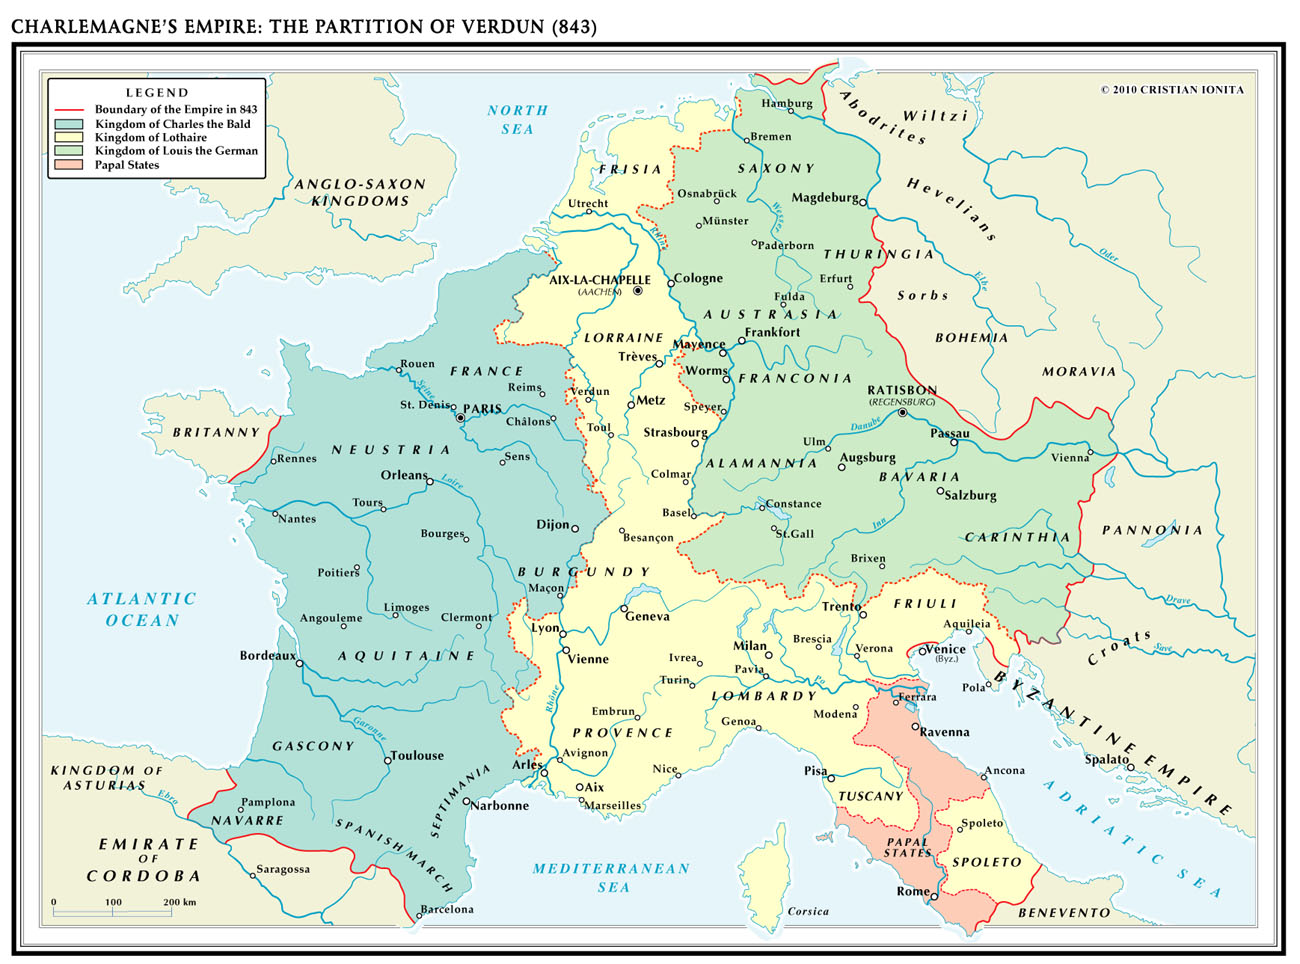 Treaty of Verdun | Alternate History Discussion on